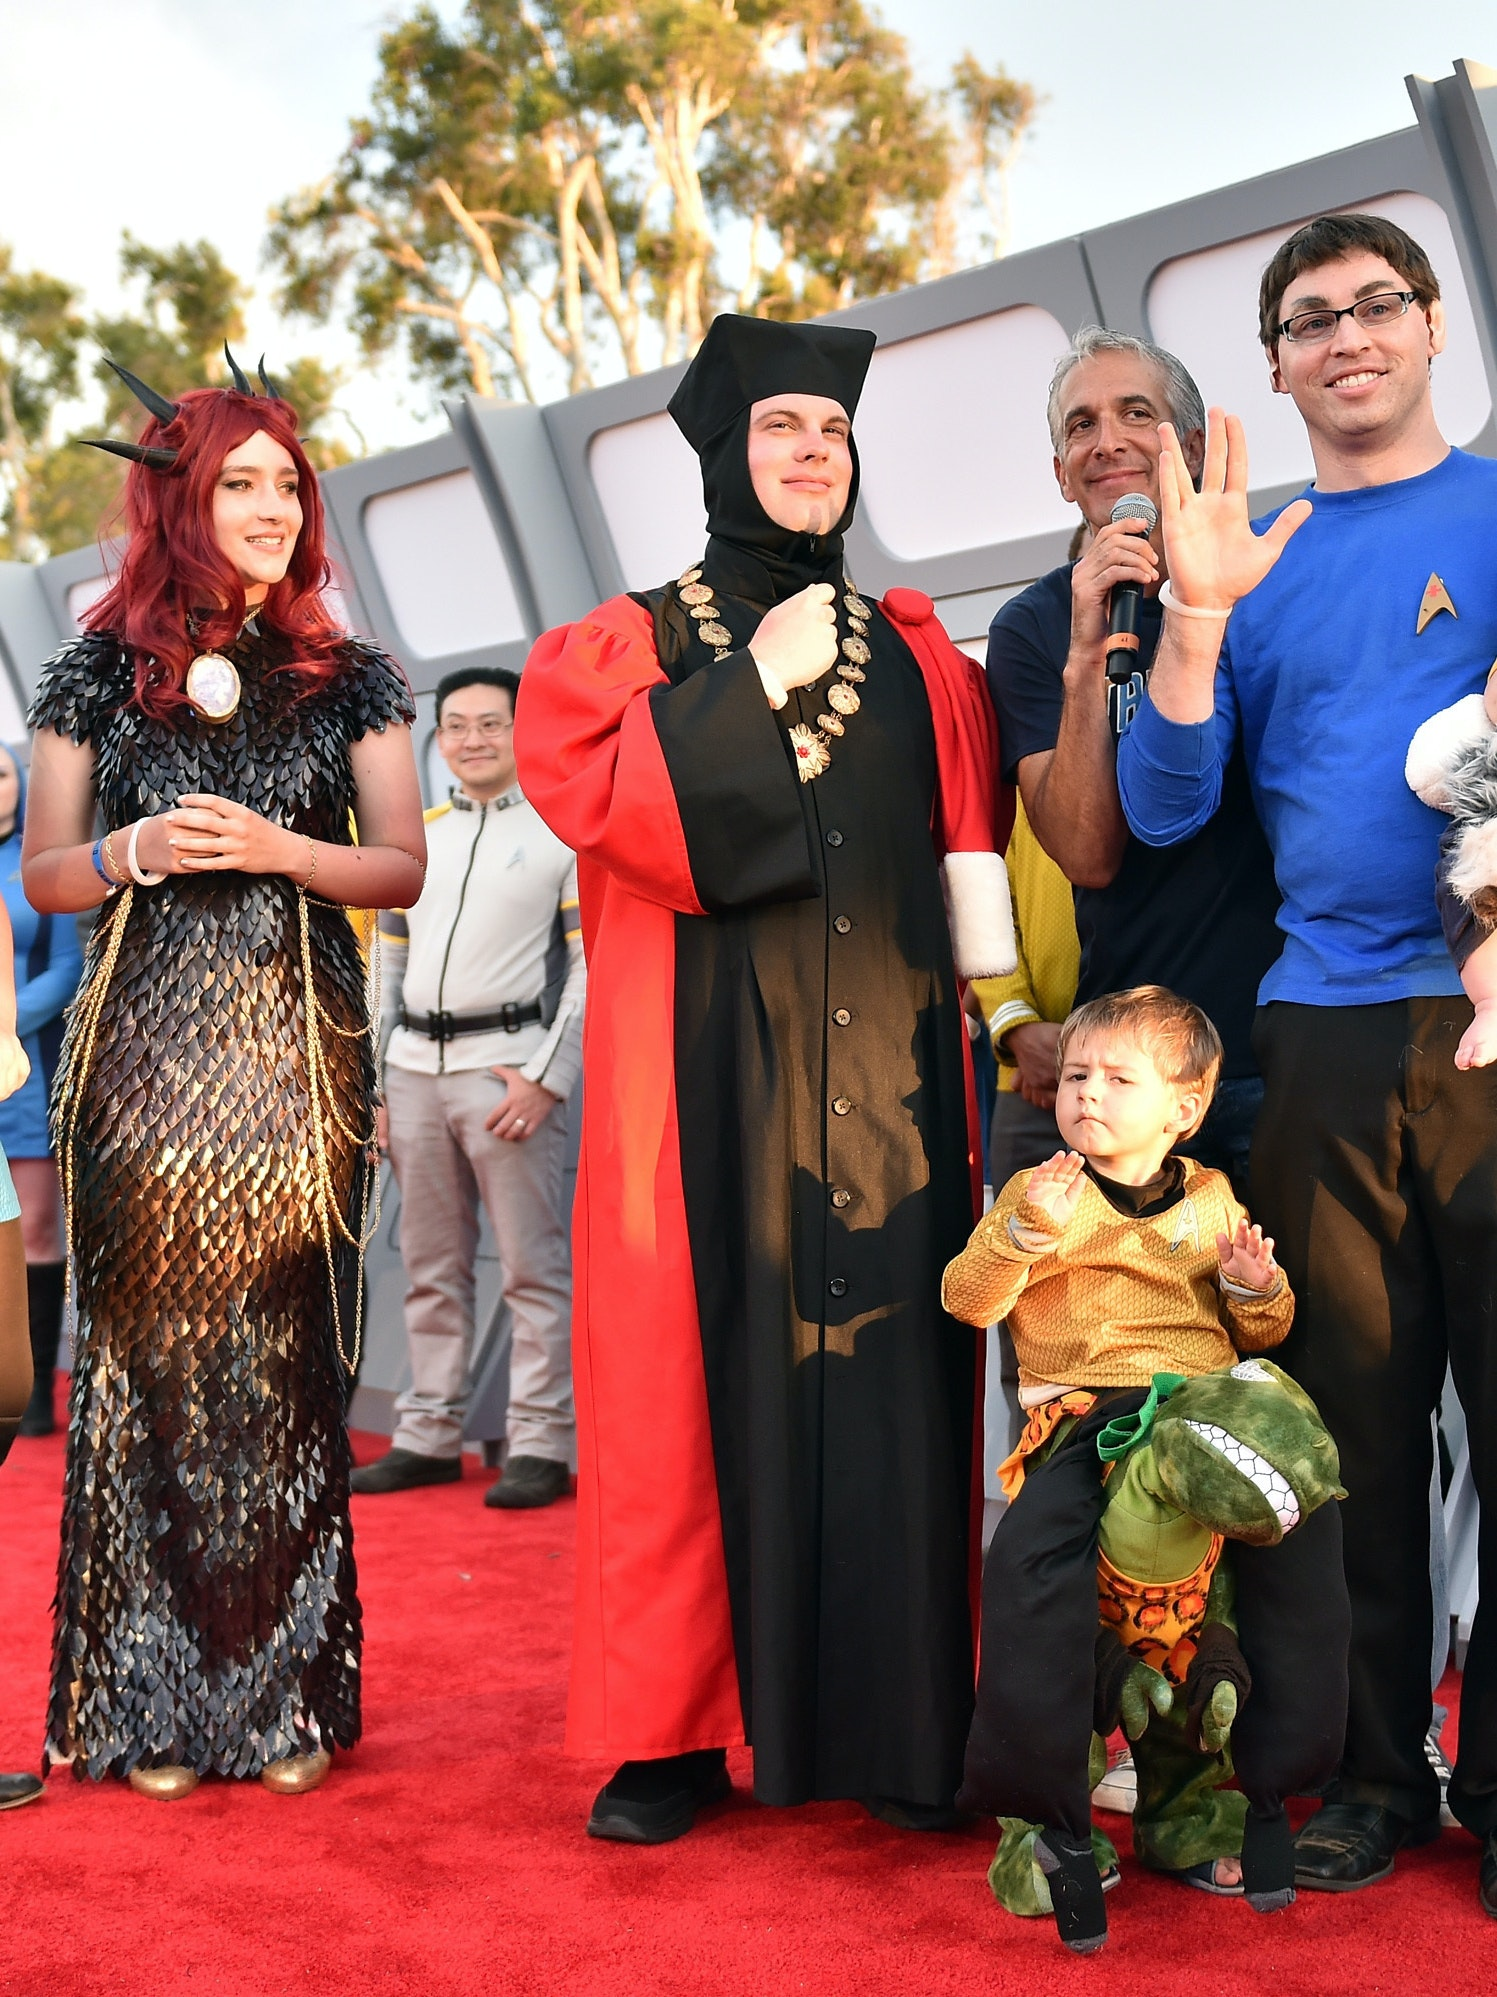 SAN DIEGO, CA - JULY 20:  Guests dress in costume on the carpet at the world premiere of the Paramount Pictures title Star Trek Beyond at Embarcadero Marina Park South on July 20, 2016 in San Diego, California.  (Photo by Mike Windle/Getty Images)